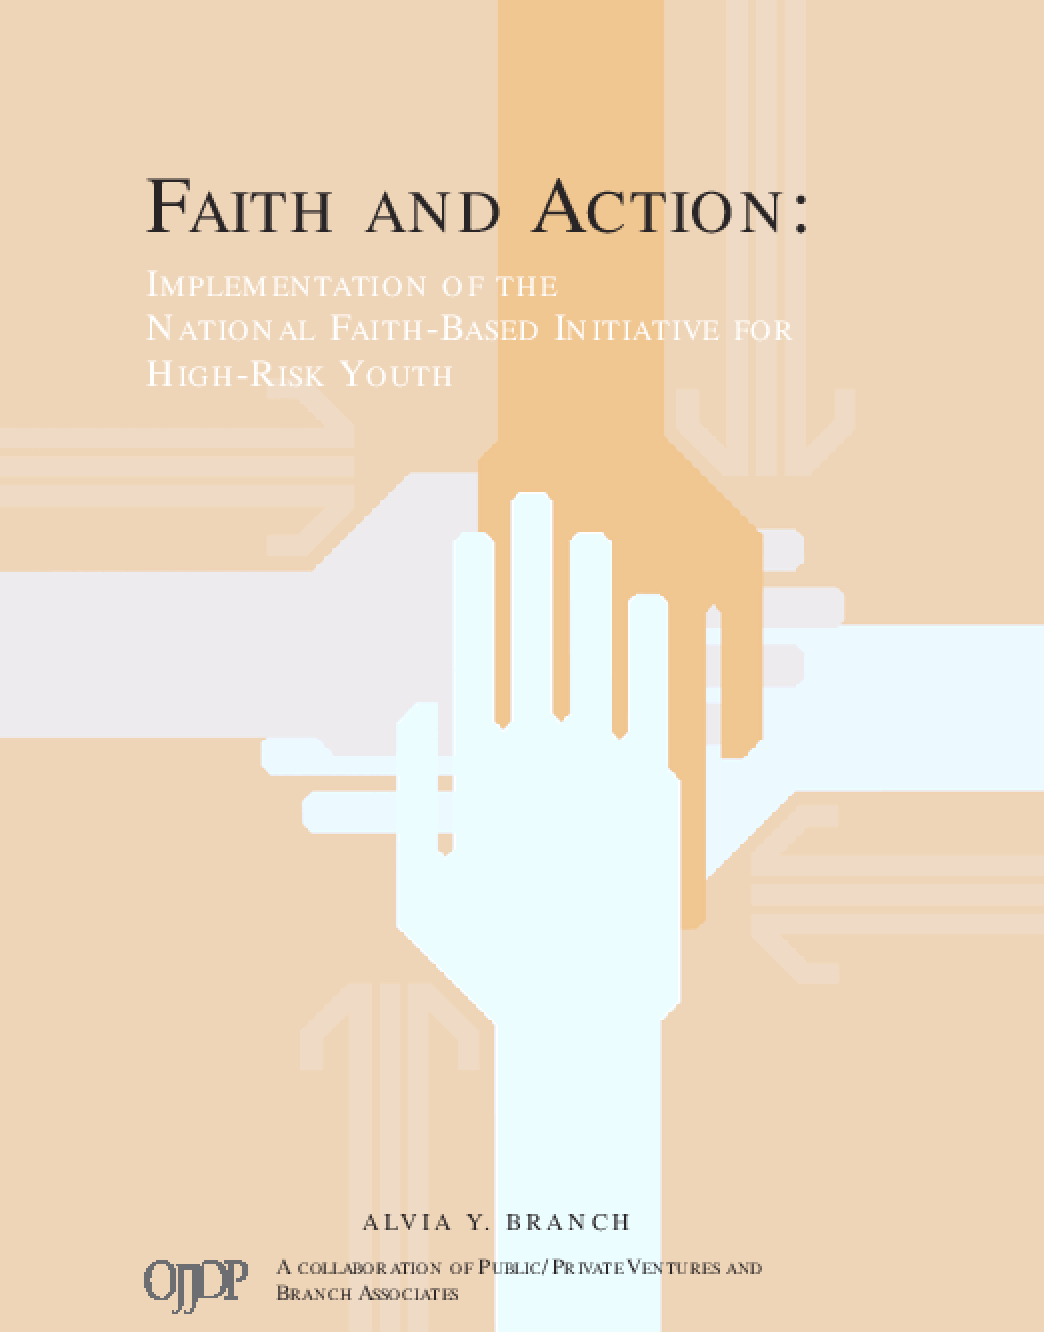 Faith and Action: Implementation of the National Faith-Based Initiative for High Risk Youth